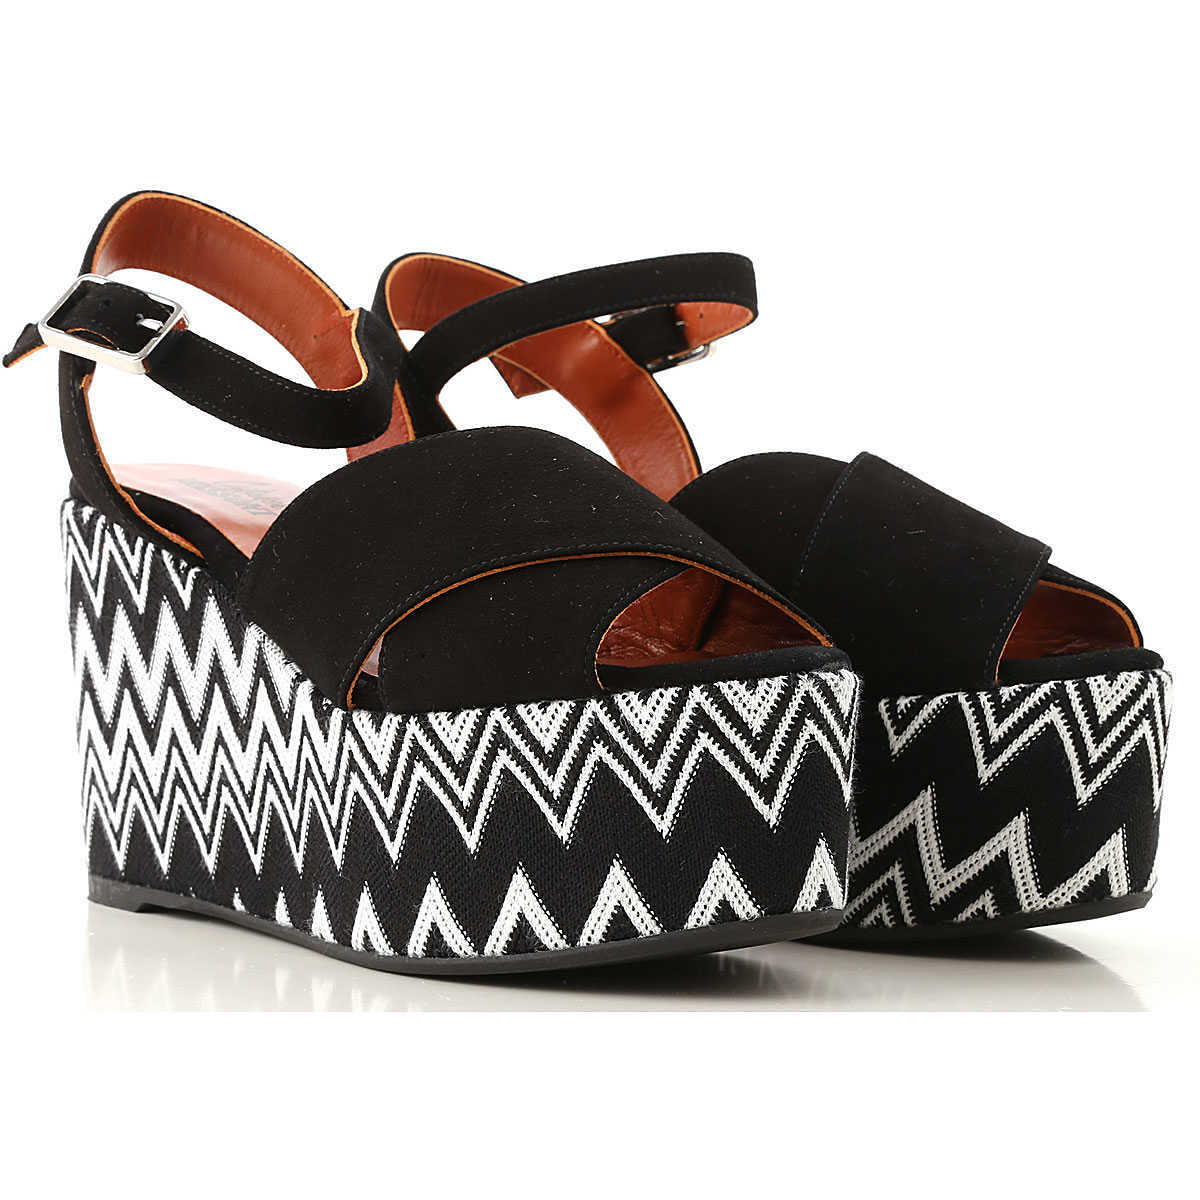 Castaner Wedges for Women On Sale Black DK - GOOFASH - Womens HOUSE SHOES